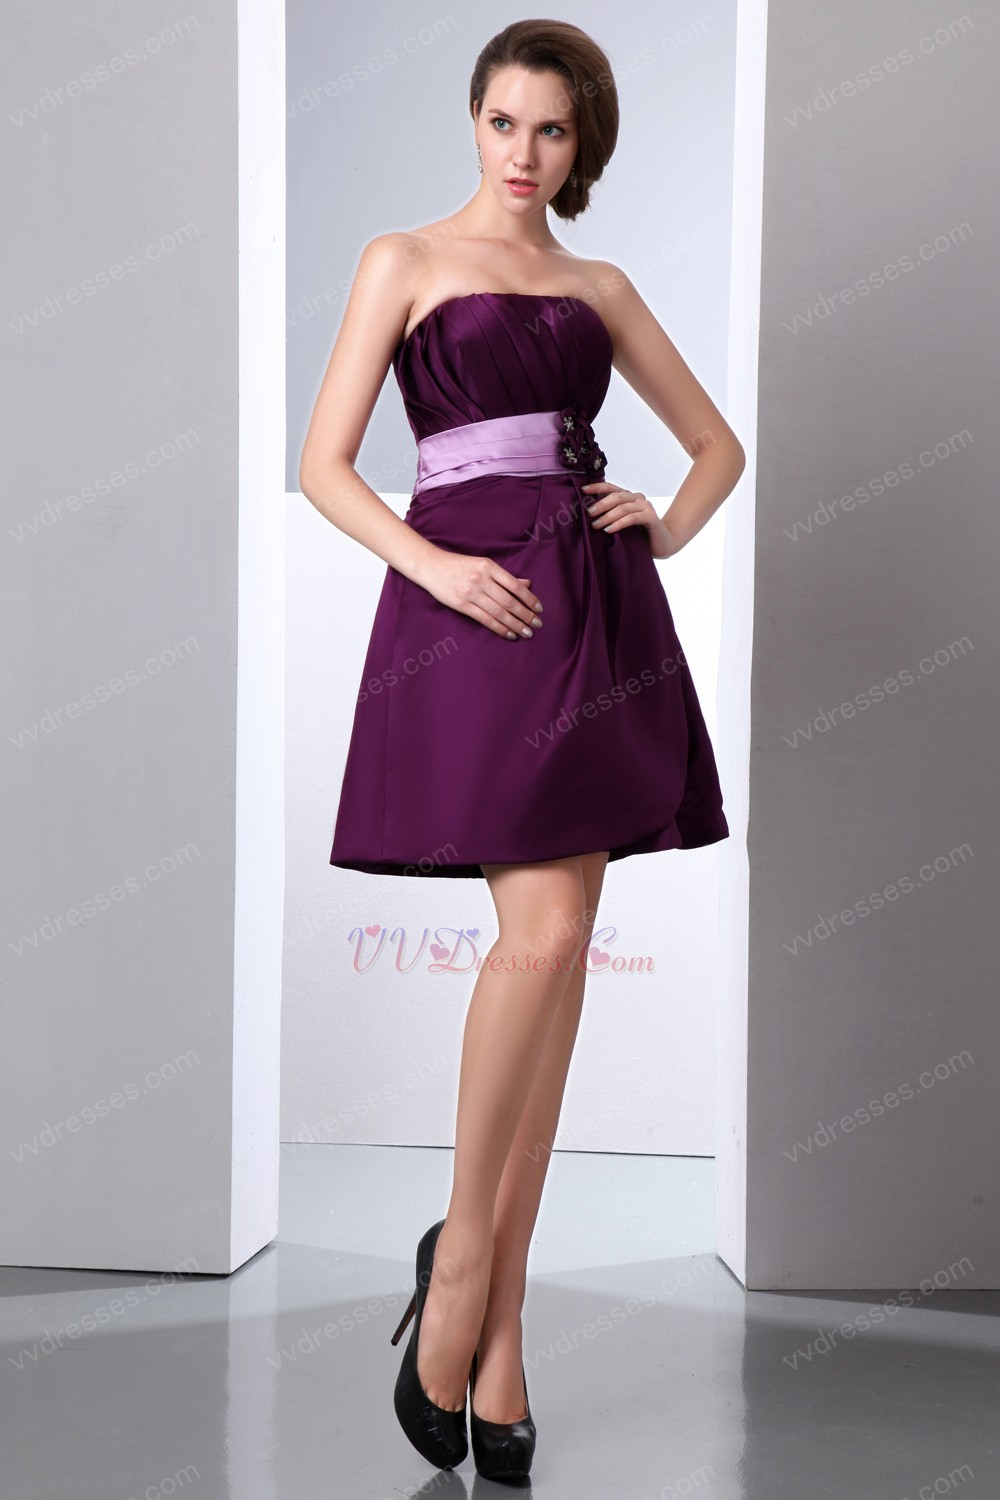 Cute Strapless Ruched Purple Short Prom Dress With Lilac Sashes